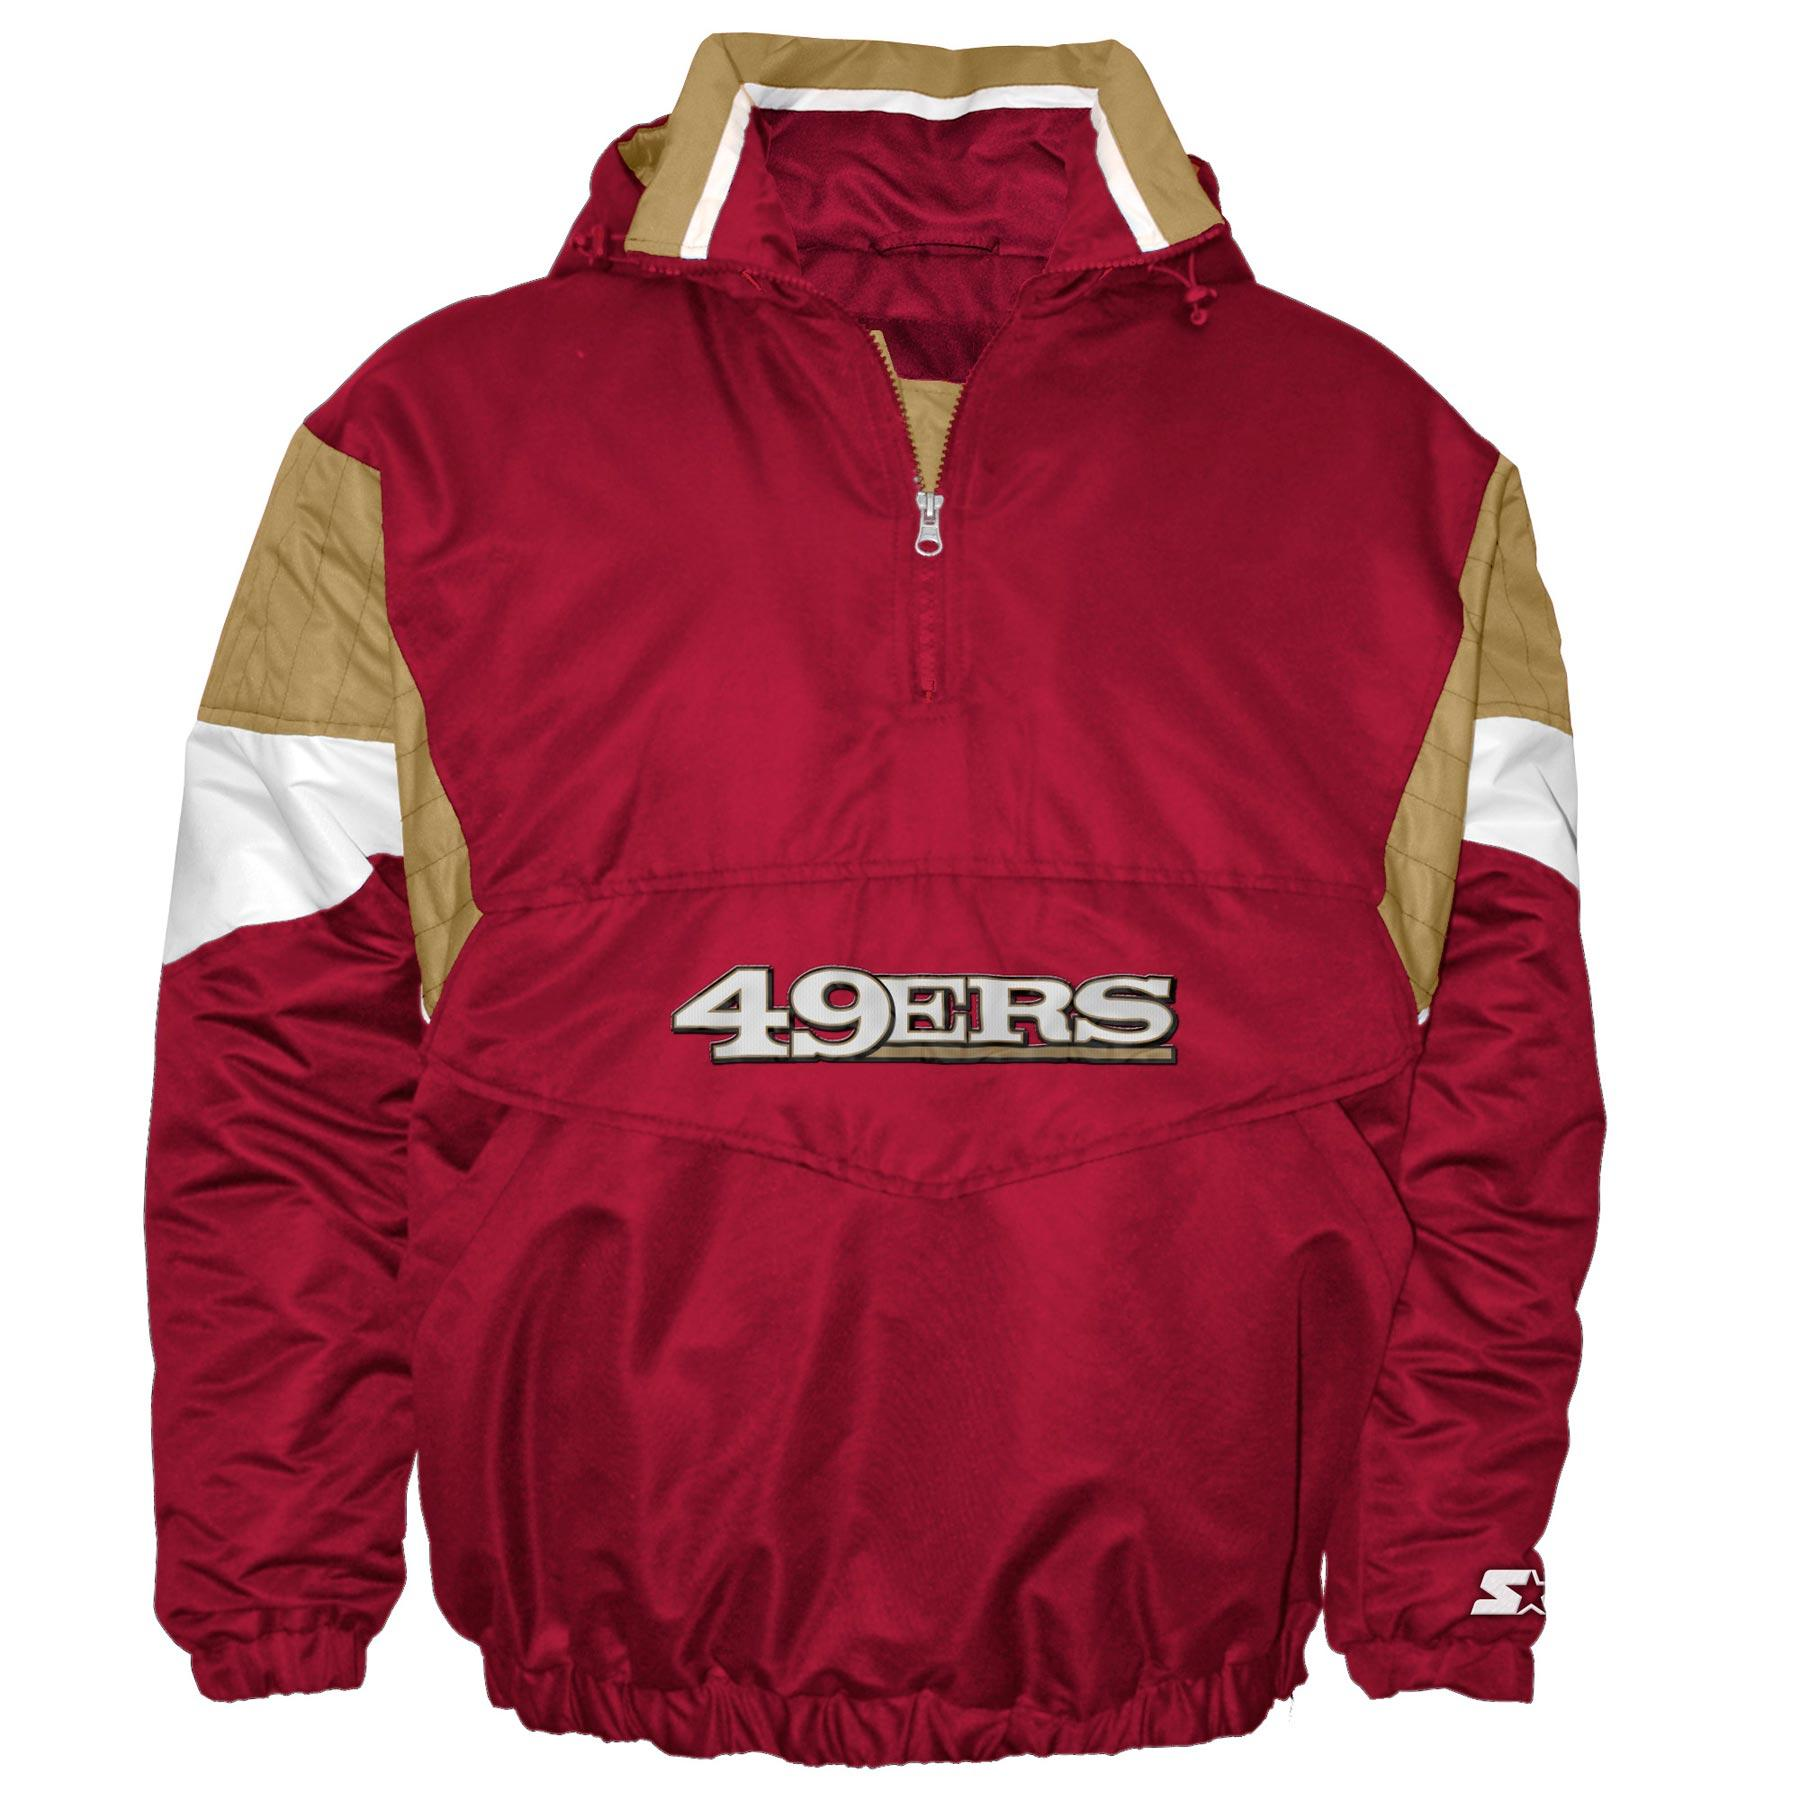 separation shoes 3f185 599c3 San Francisco 49ers Starter Breakaway Pullover Jacket